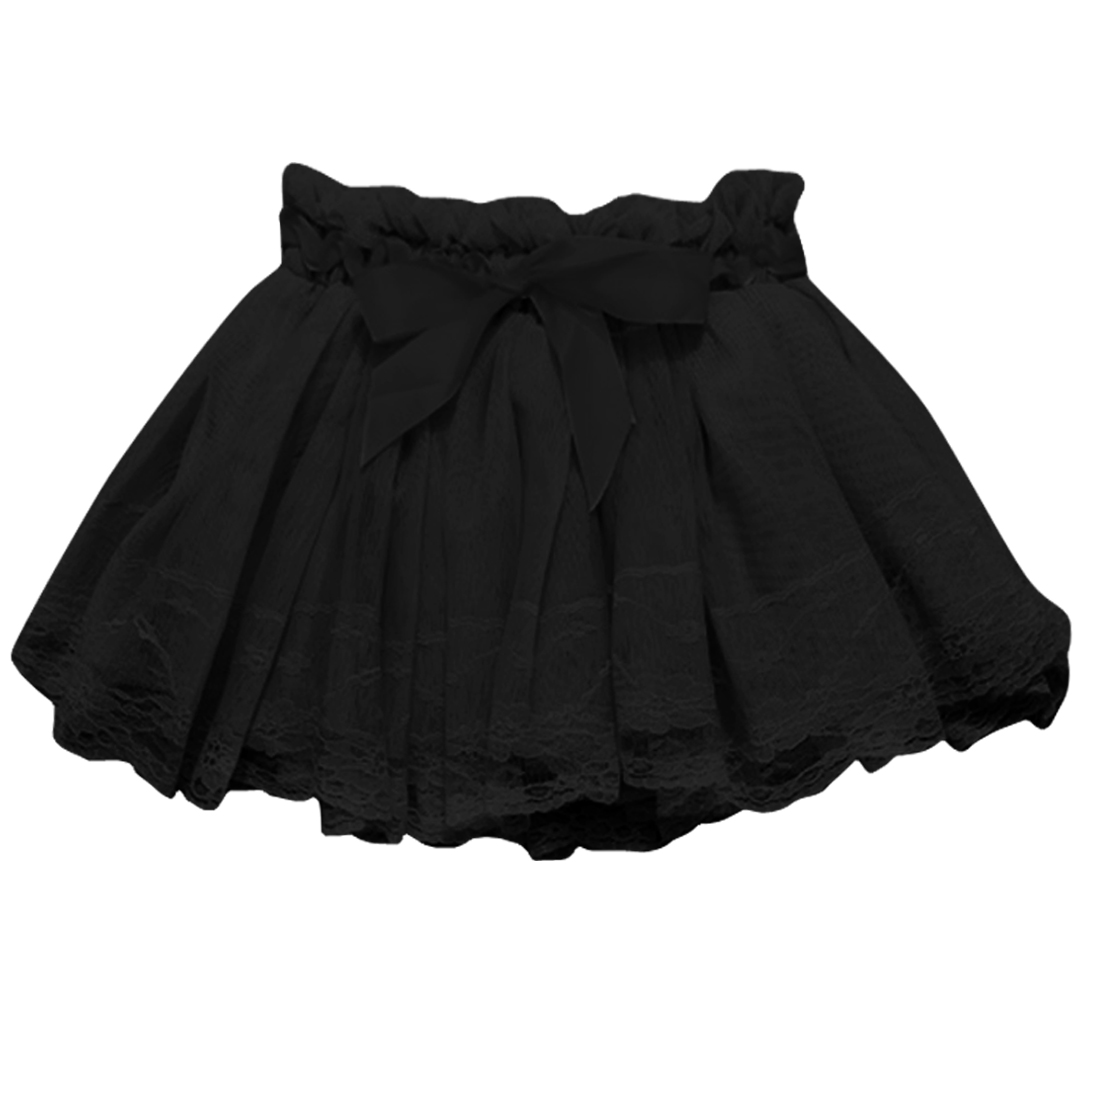 3T Black Lace Style Round Trim Stylish Pricess Skirt for Girls